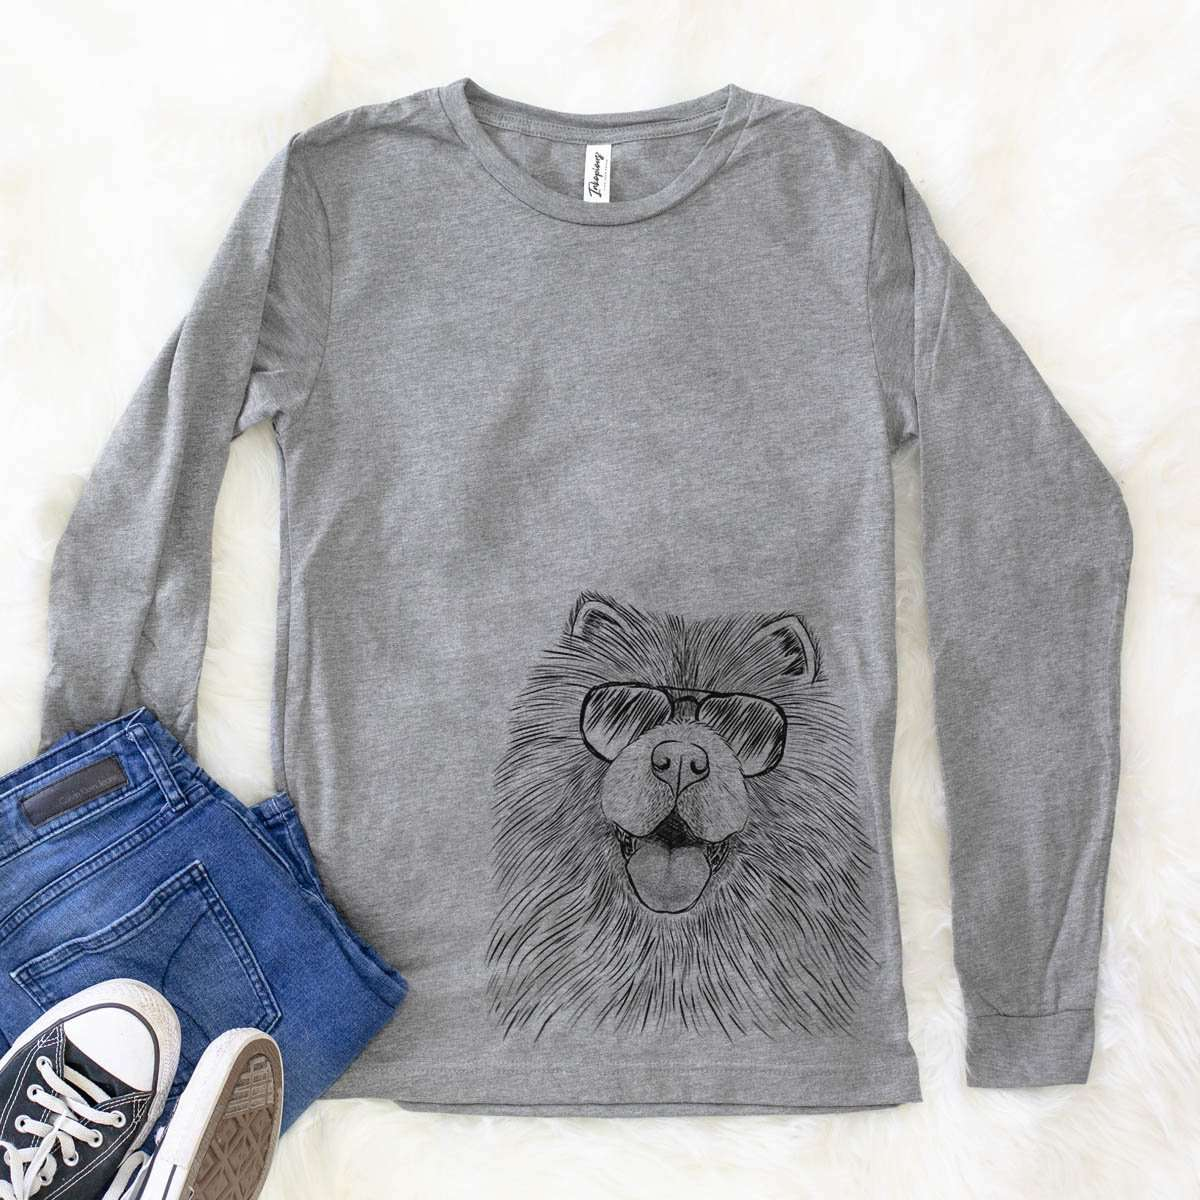 Charming Charlie the Chow - Long Sleeve Crewneck